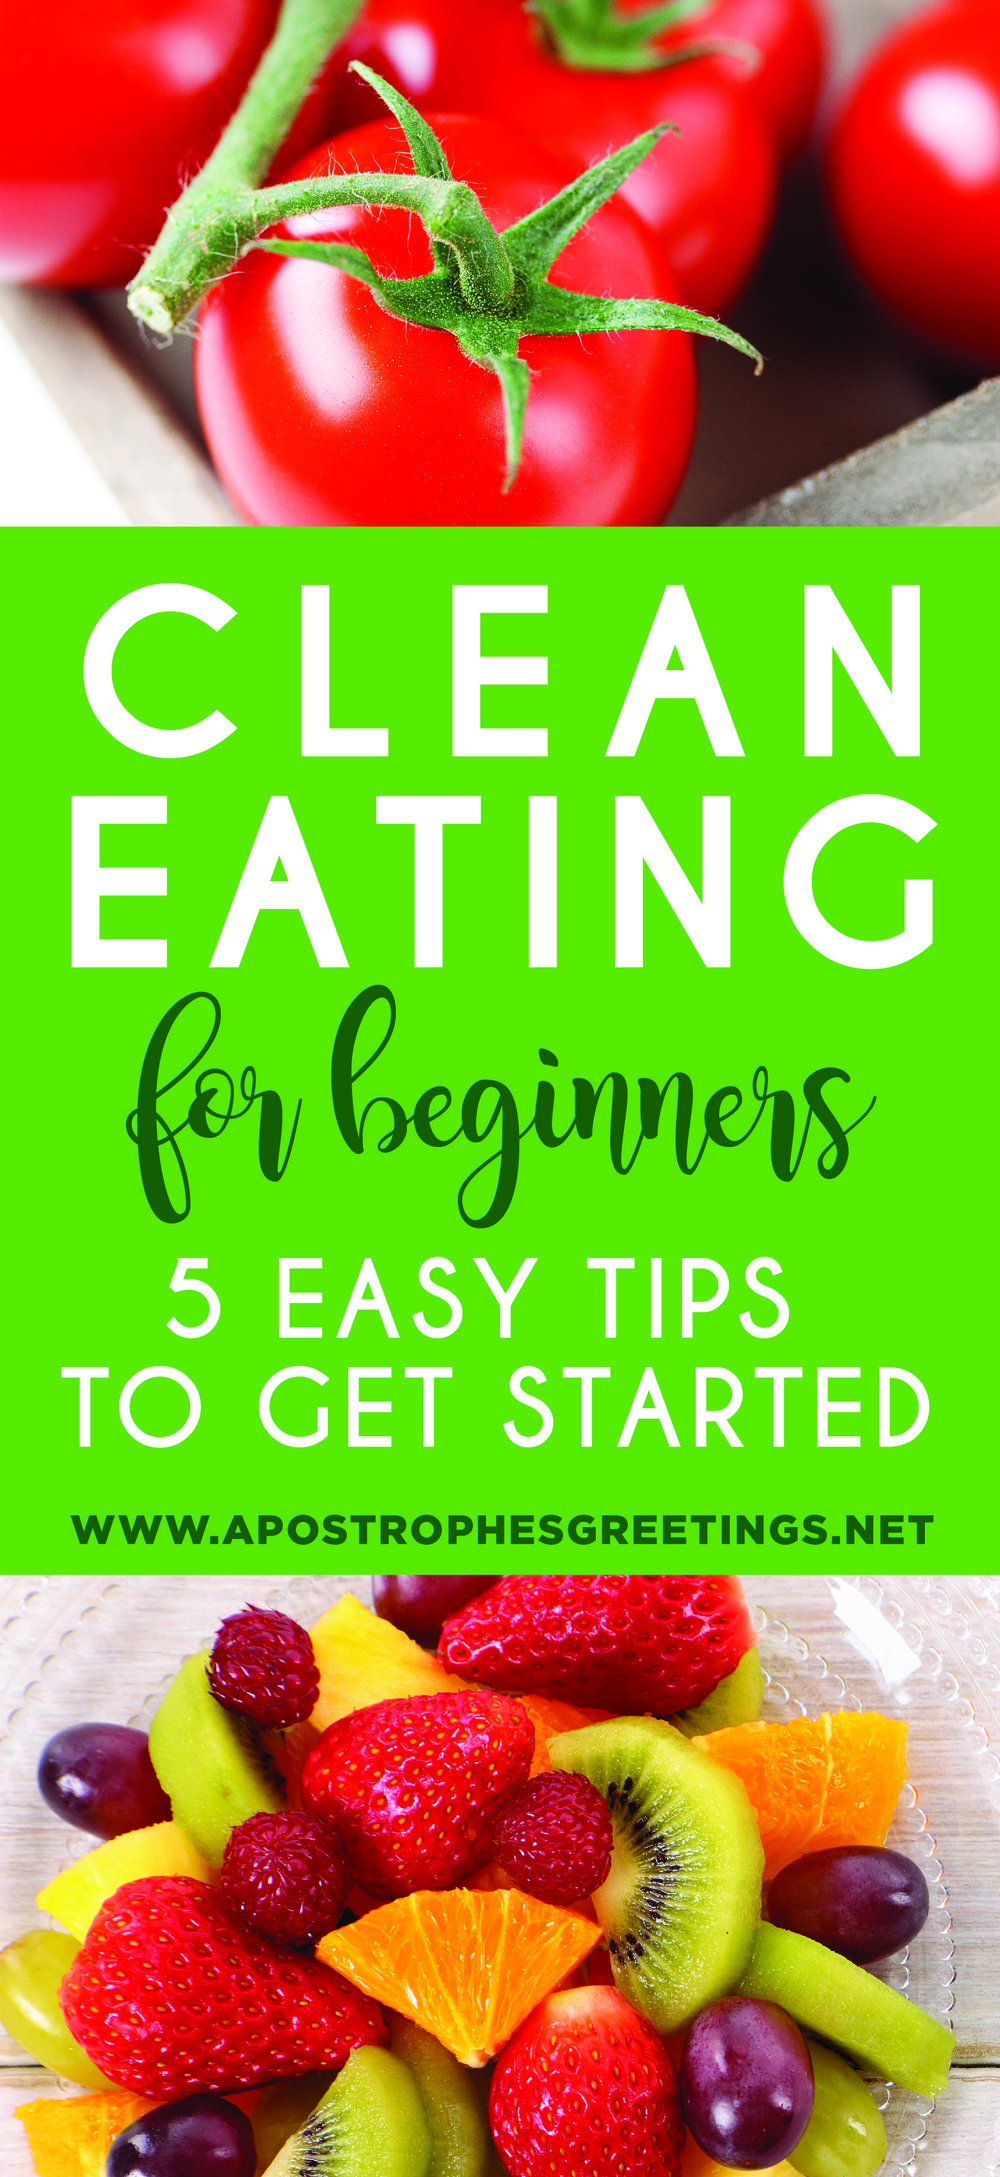 Clean Eating for beginners, 5 tips to start